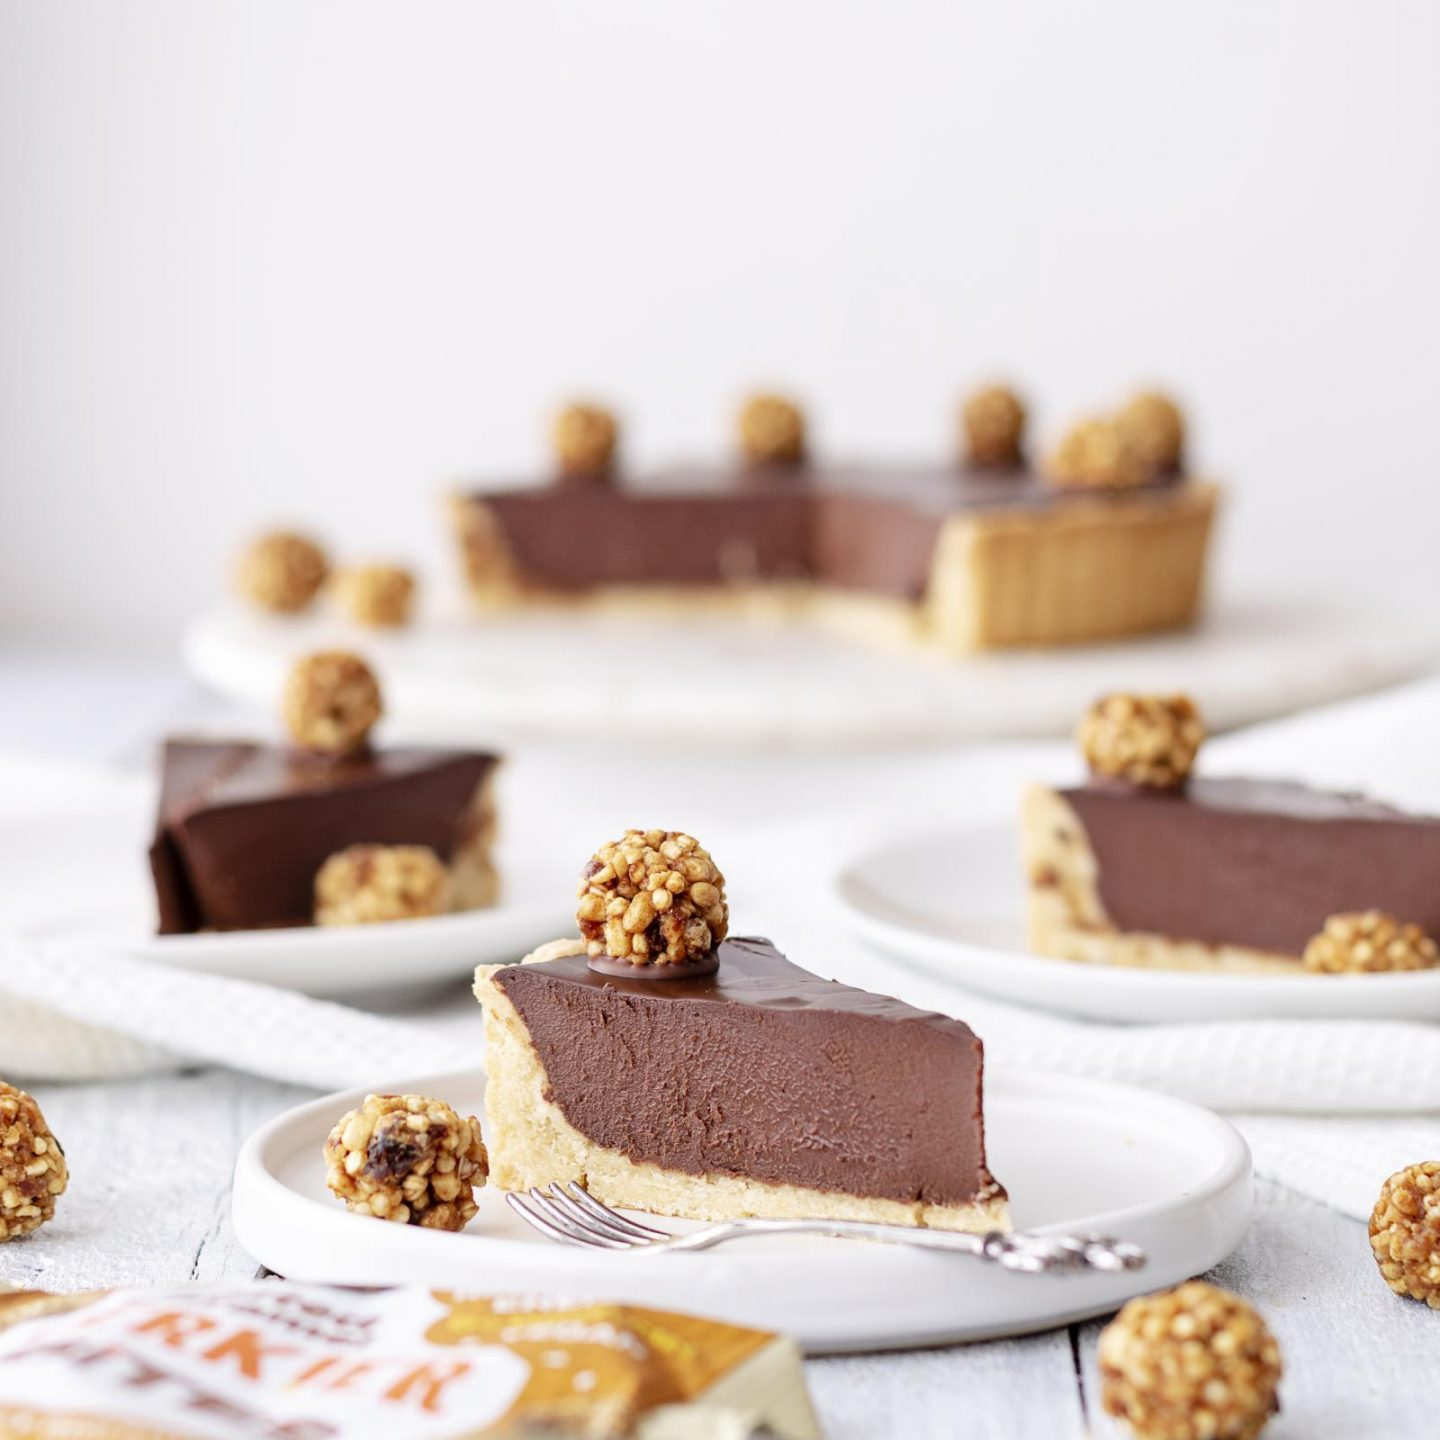 Vegan Chocolate Coffee Tart